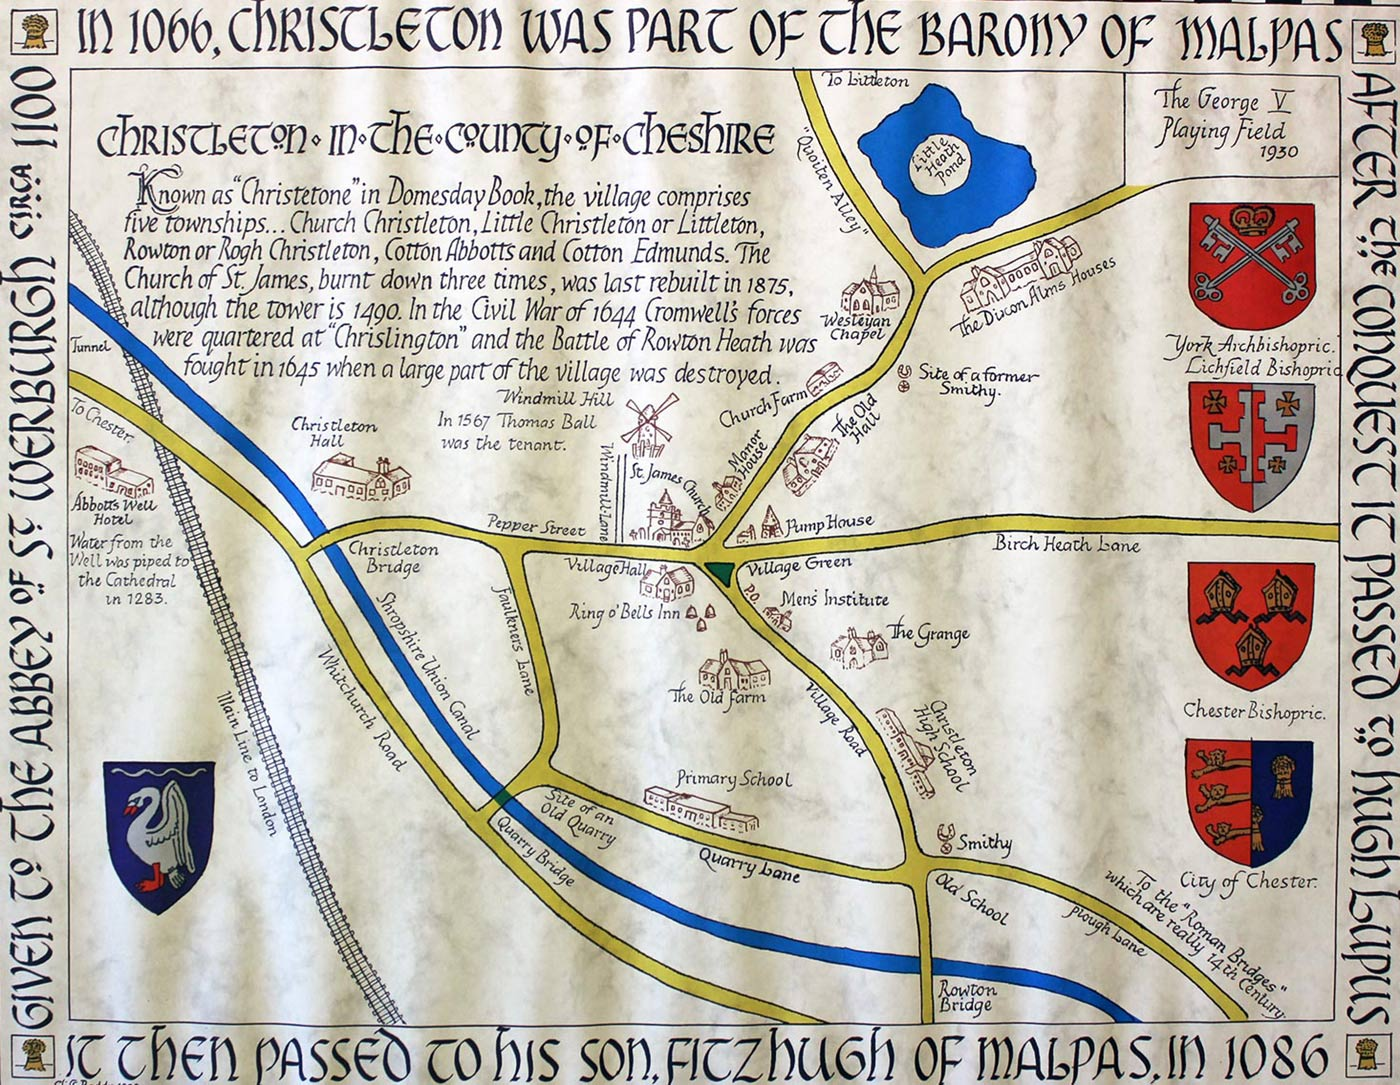 Map of Christleton in 1066